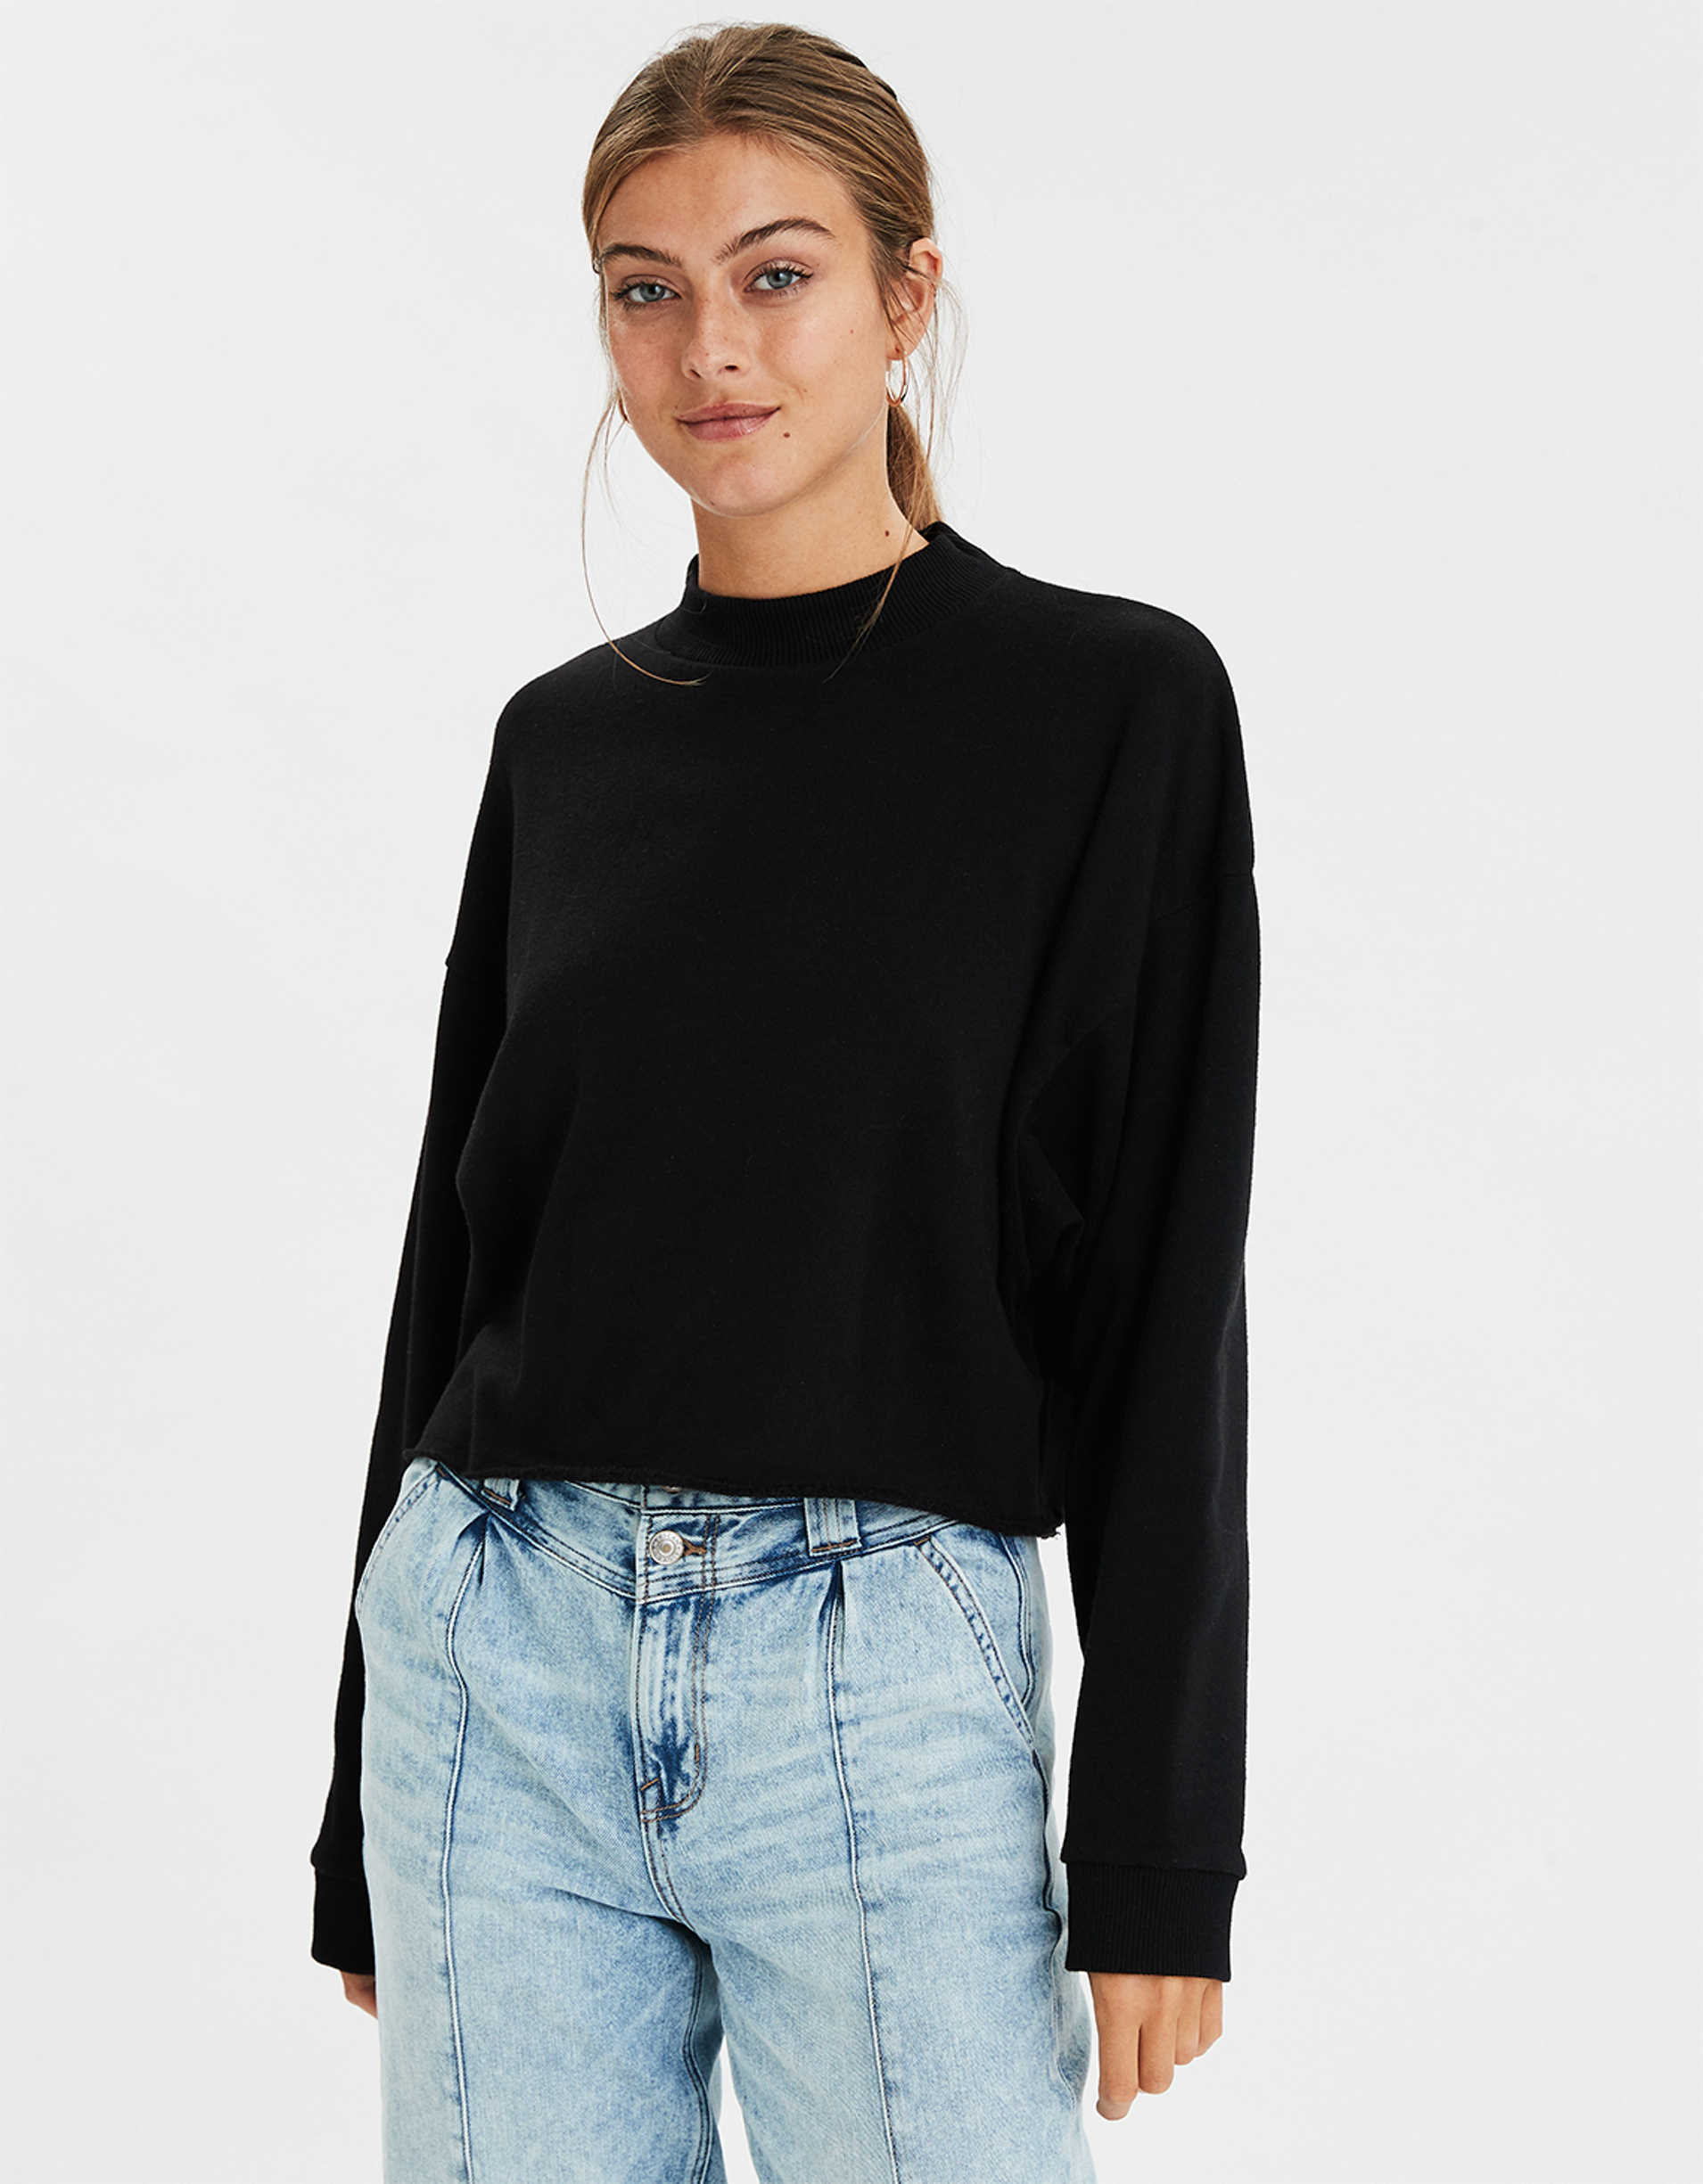 AE Fleece Mock Neck Sweatshirt